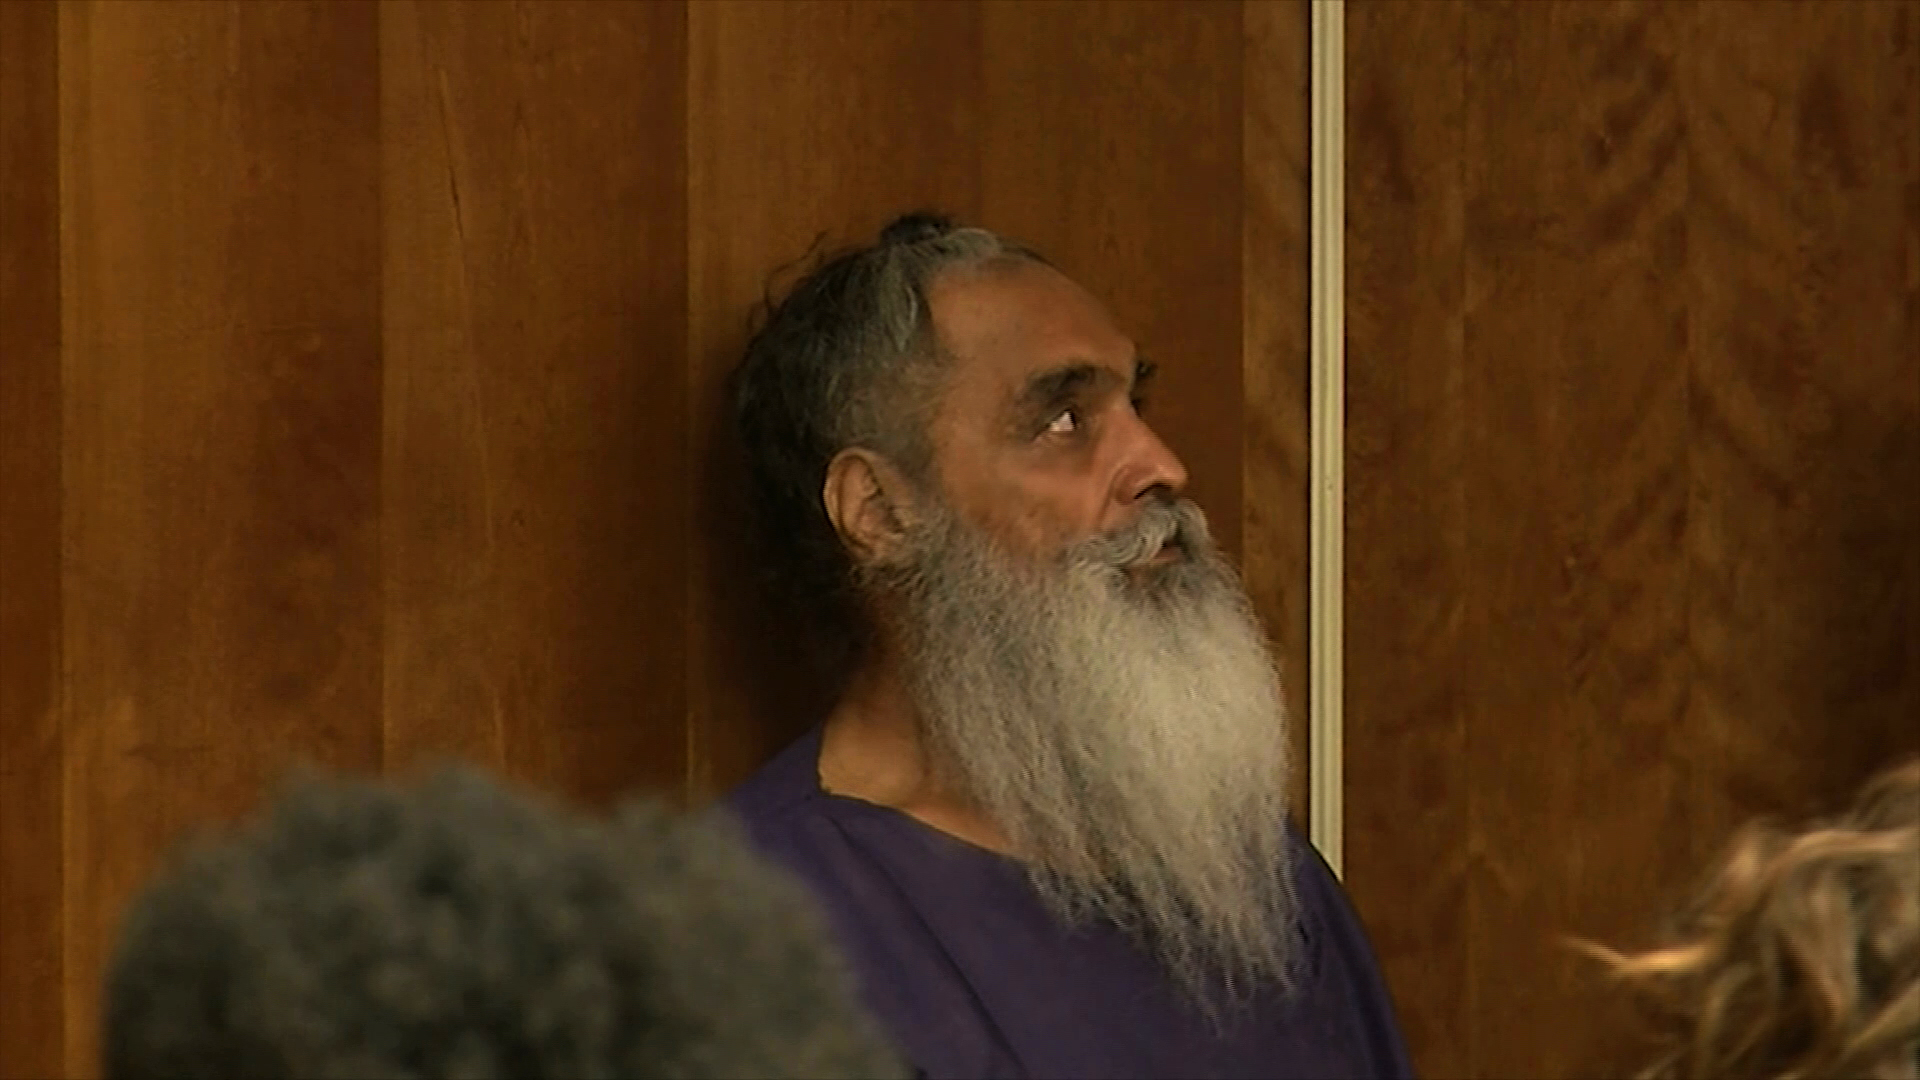 Jagjit Singh appears for his arraignment in a Bakersfield courtroom on Aug. 28, 2019. (Credit: KGET via CNN)